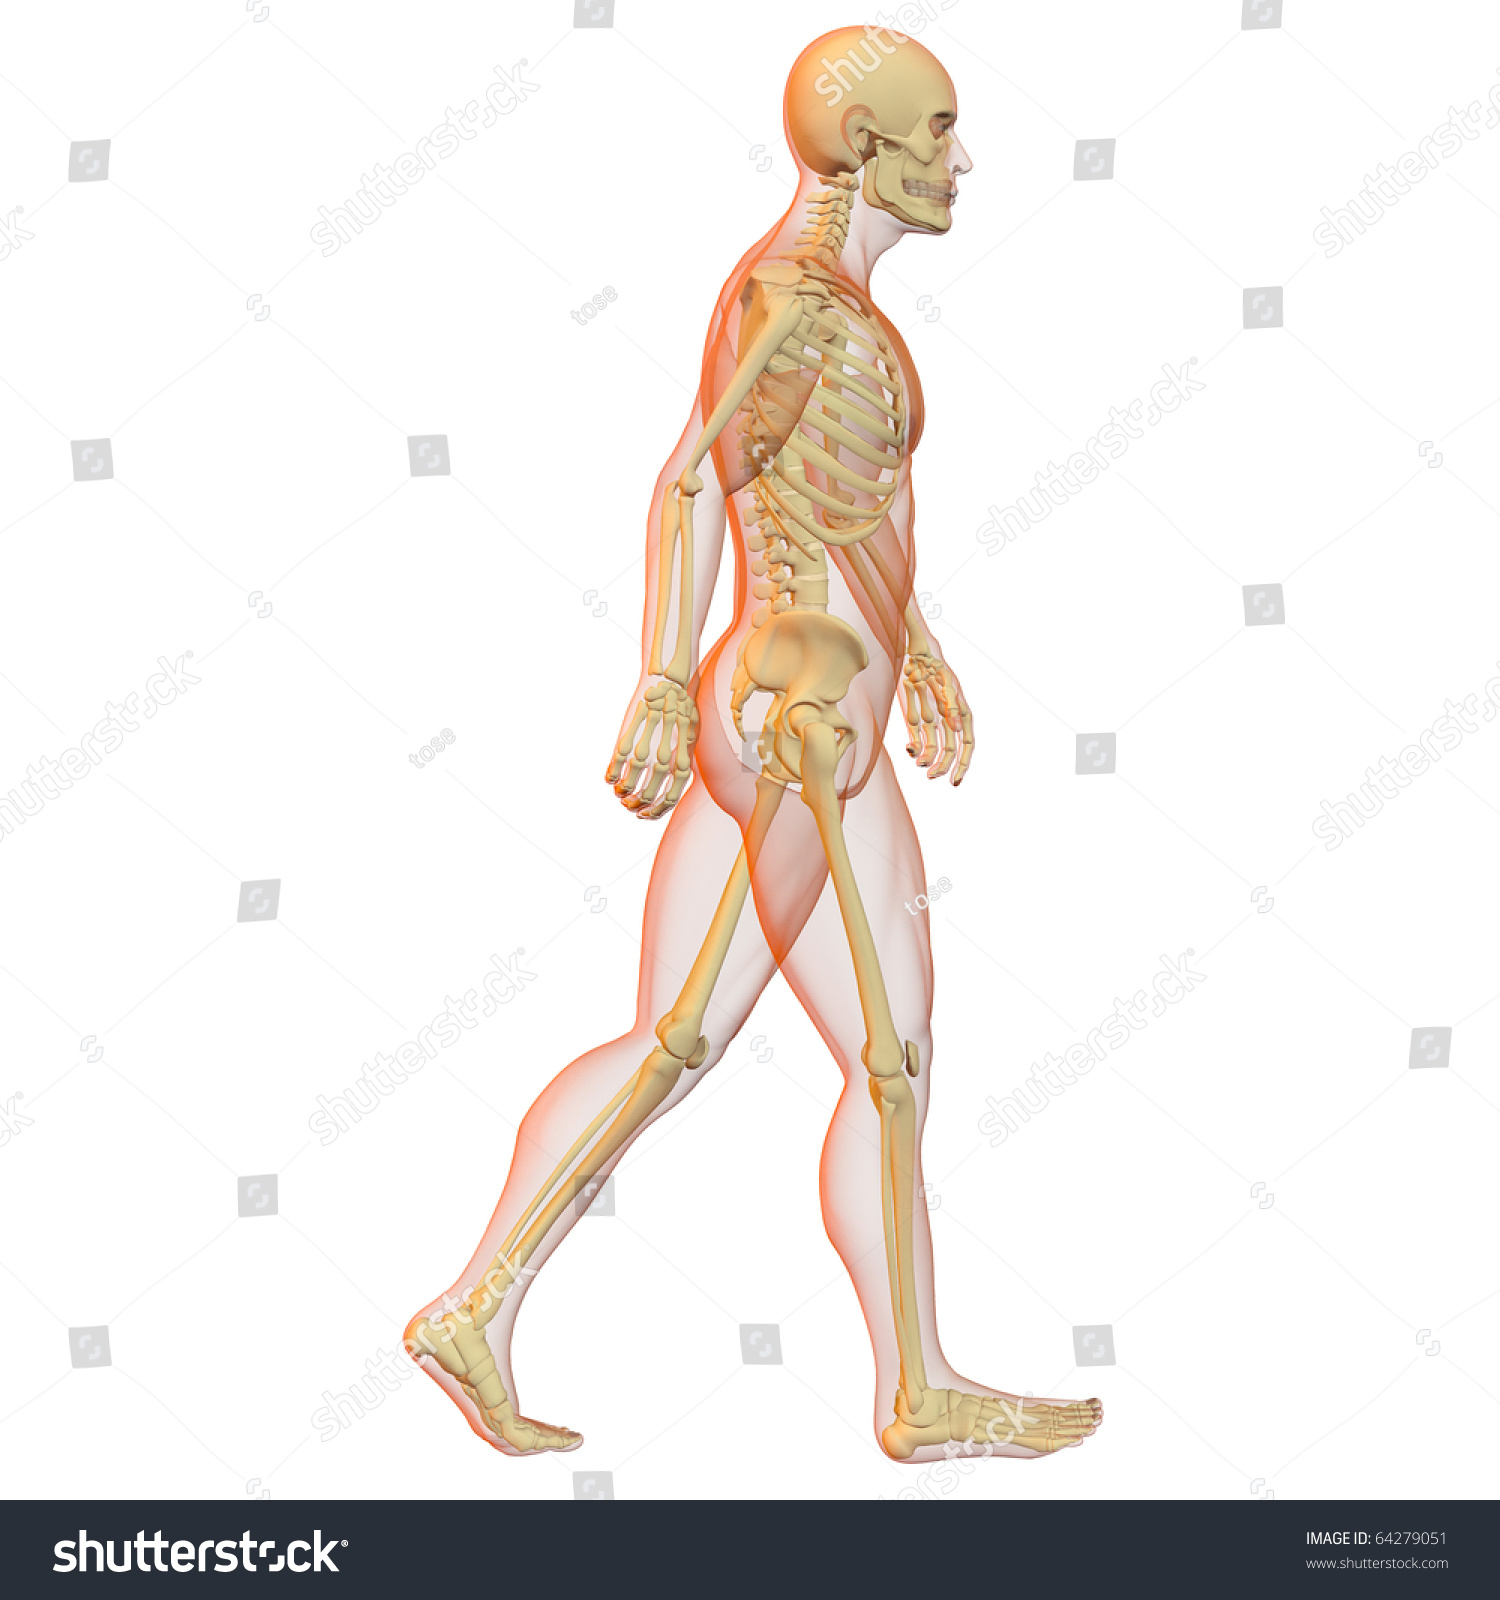 xray illustration male human body skeleton stock illustration, Skeleton